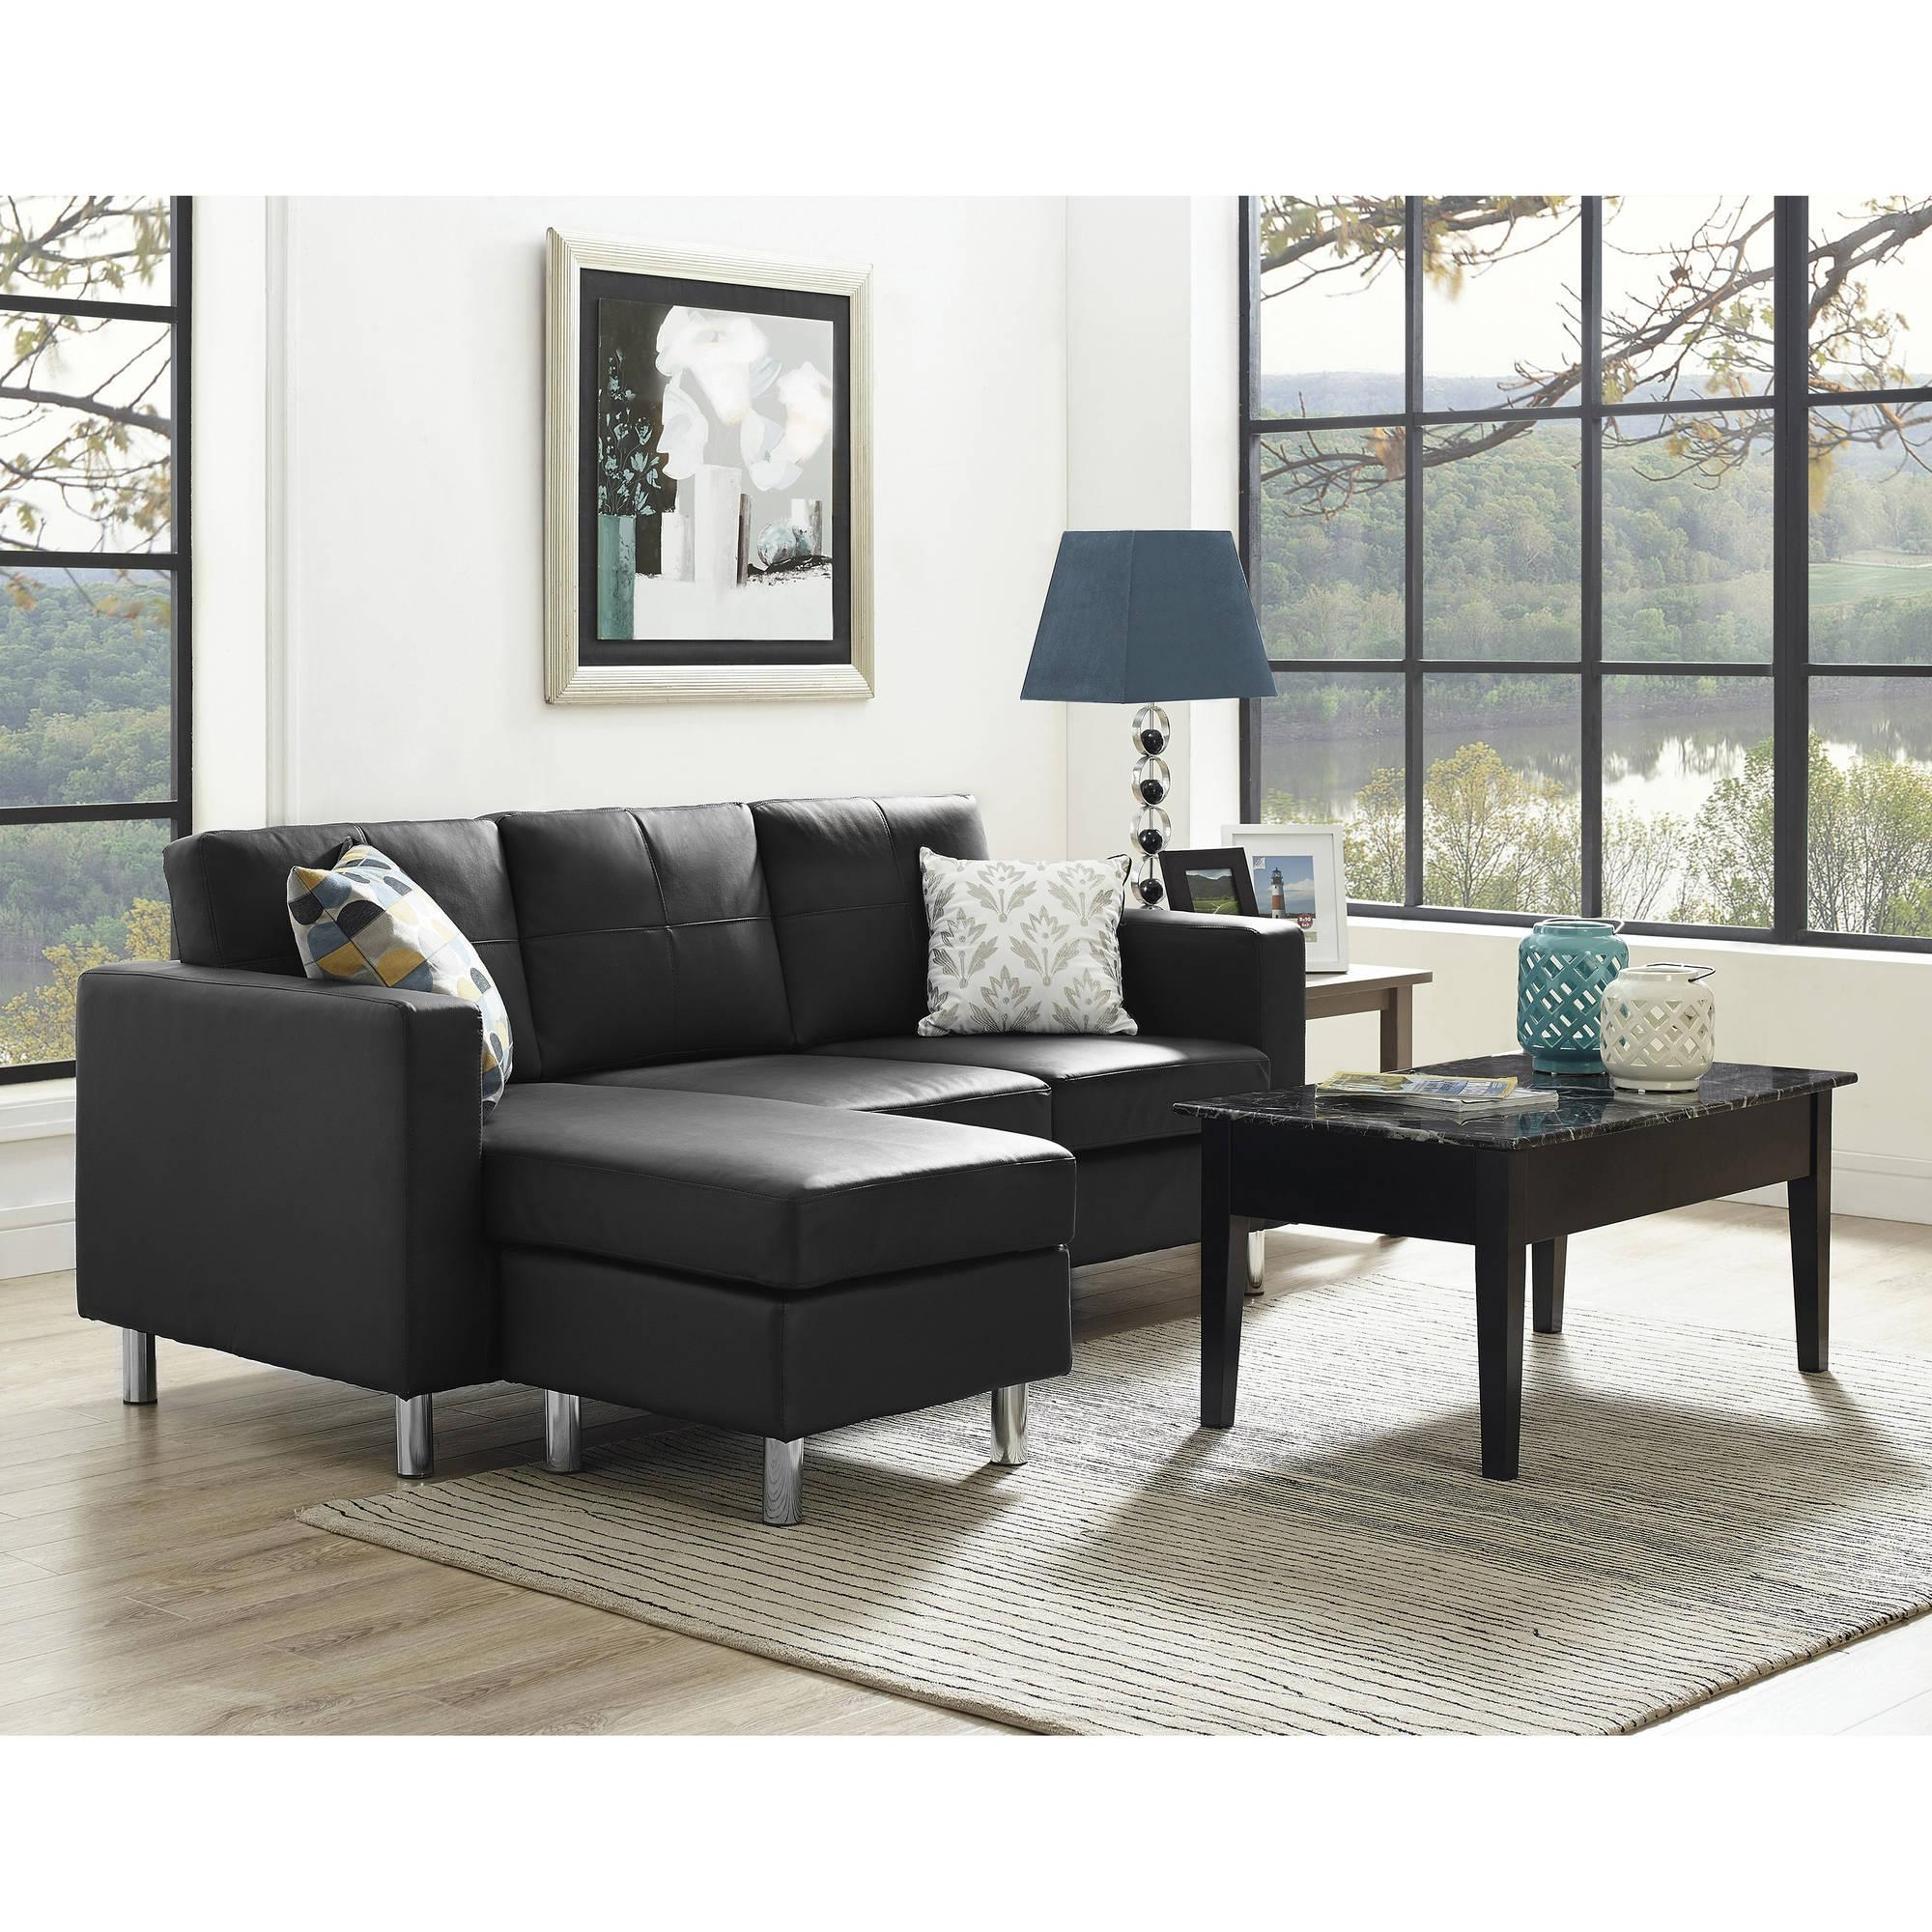 Featured Image of Sectional Small Spaces